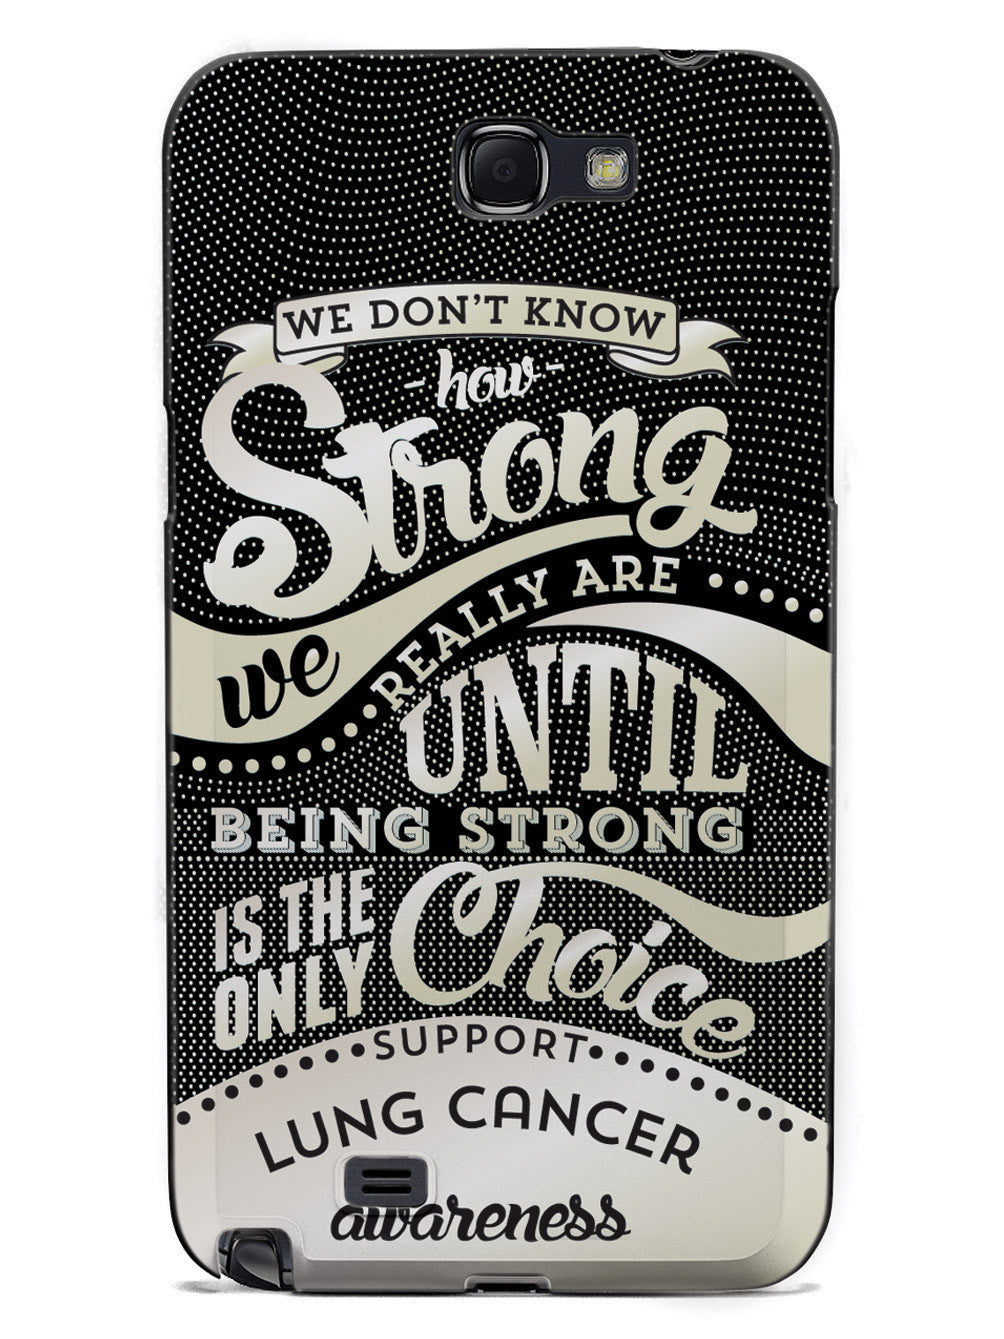 How Strong - Lung Cancer Awareness Case